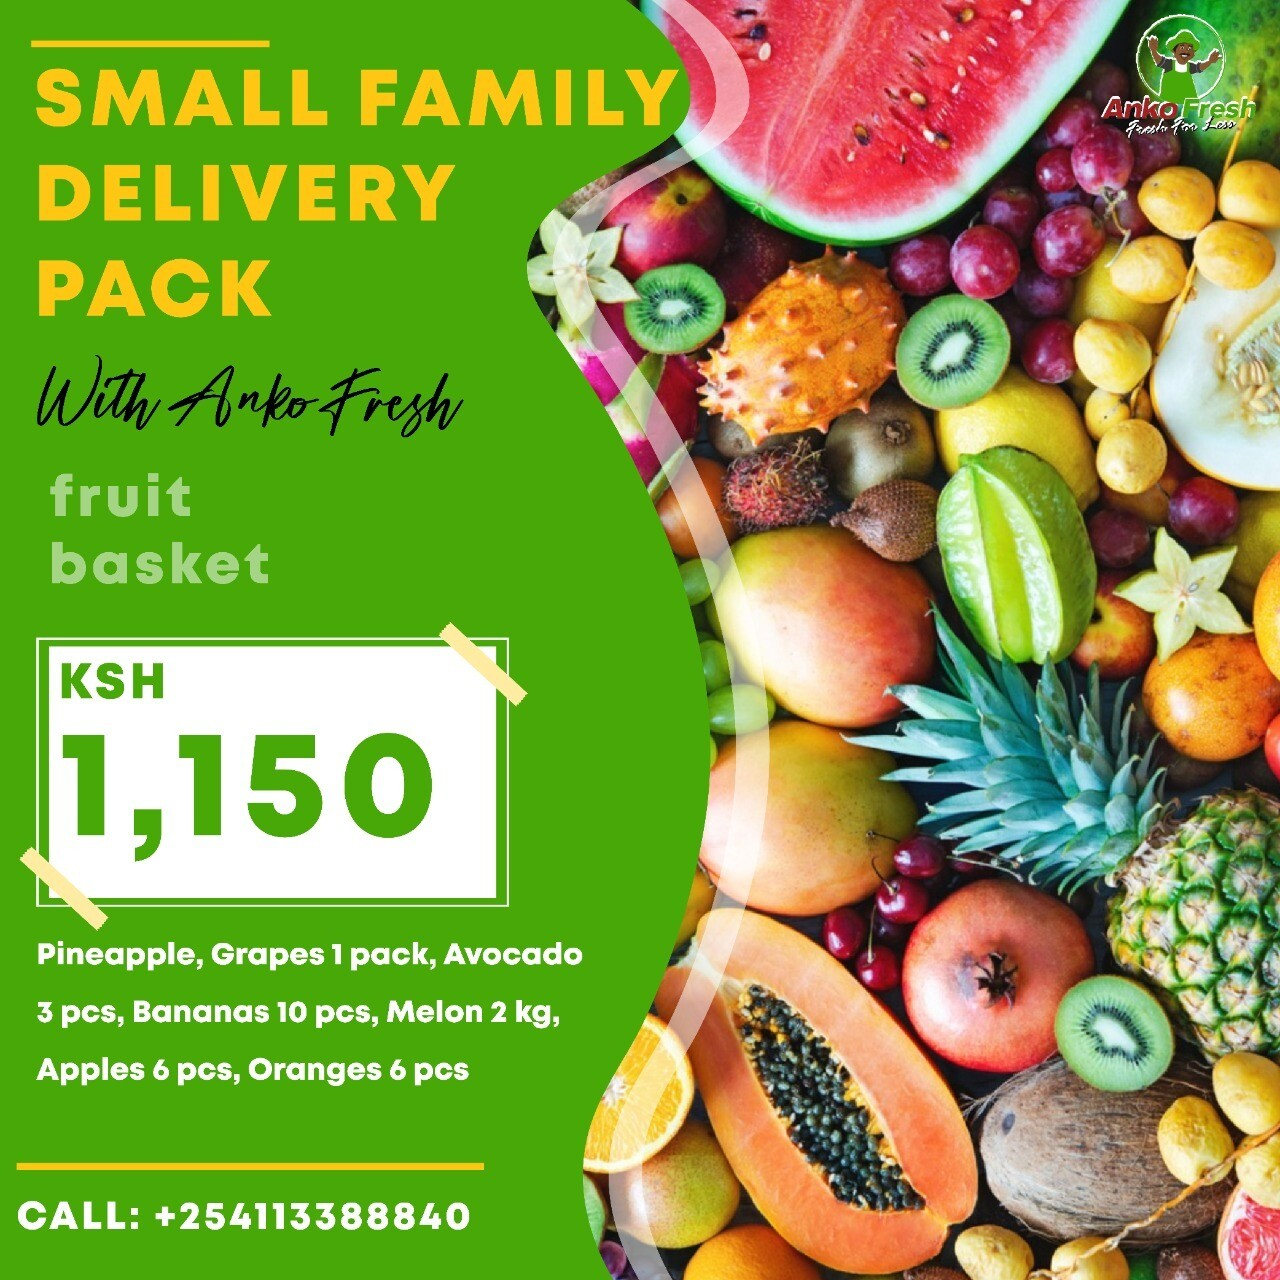 Small family fruits pack serves family of 6 for 1 week . choose extra portions plus wine gin